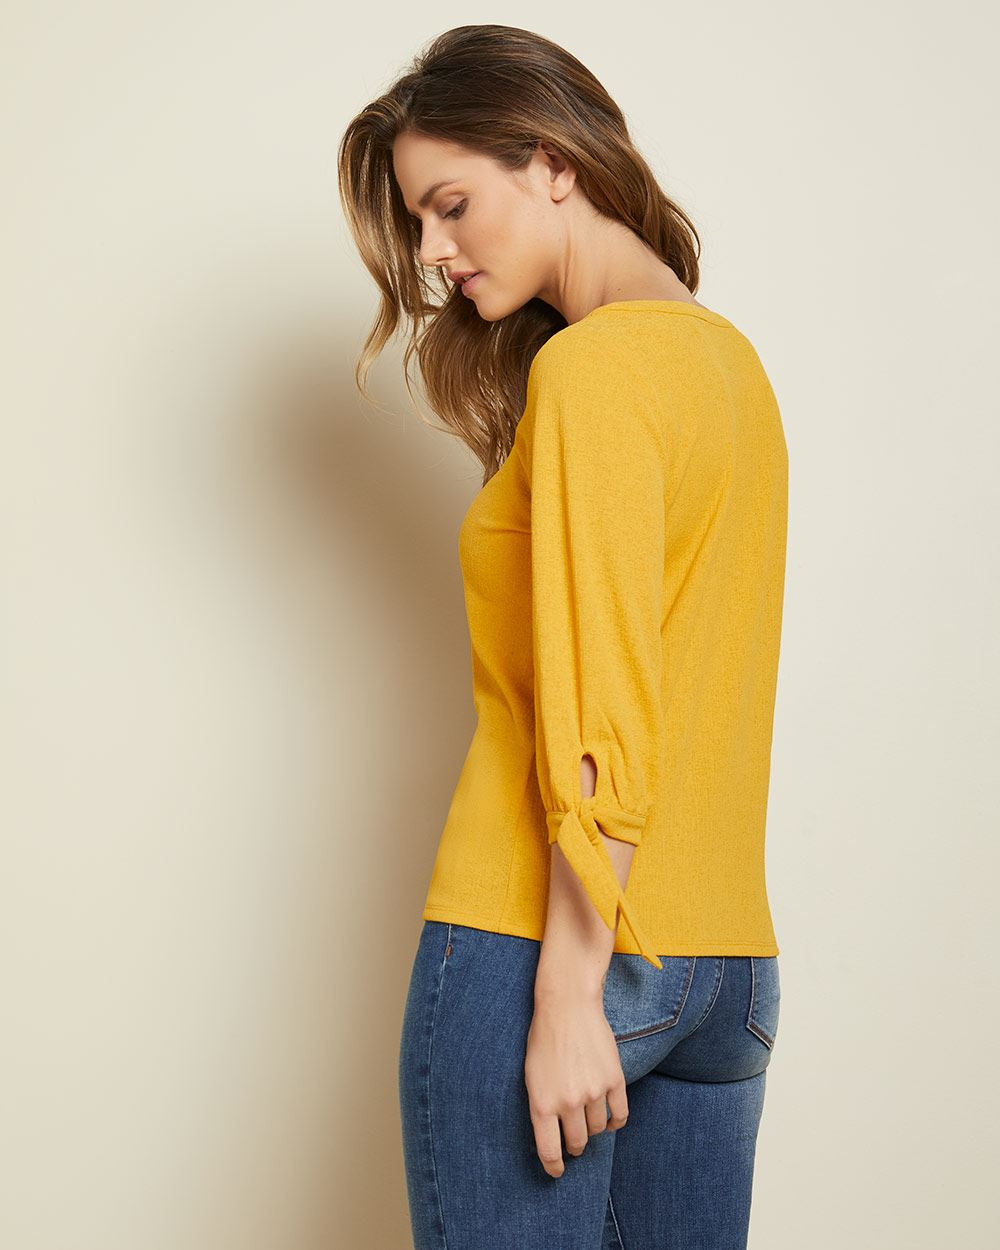 Tied 3/4 sleeve t-shirt